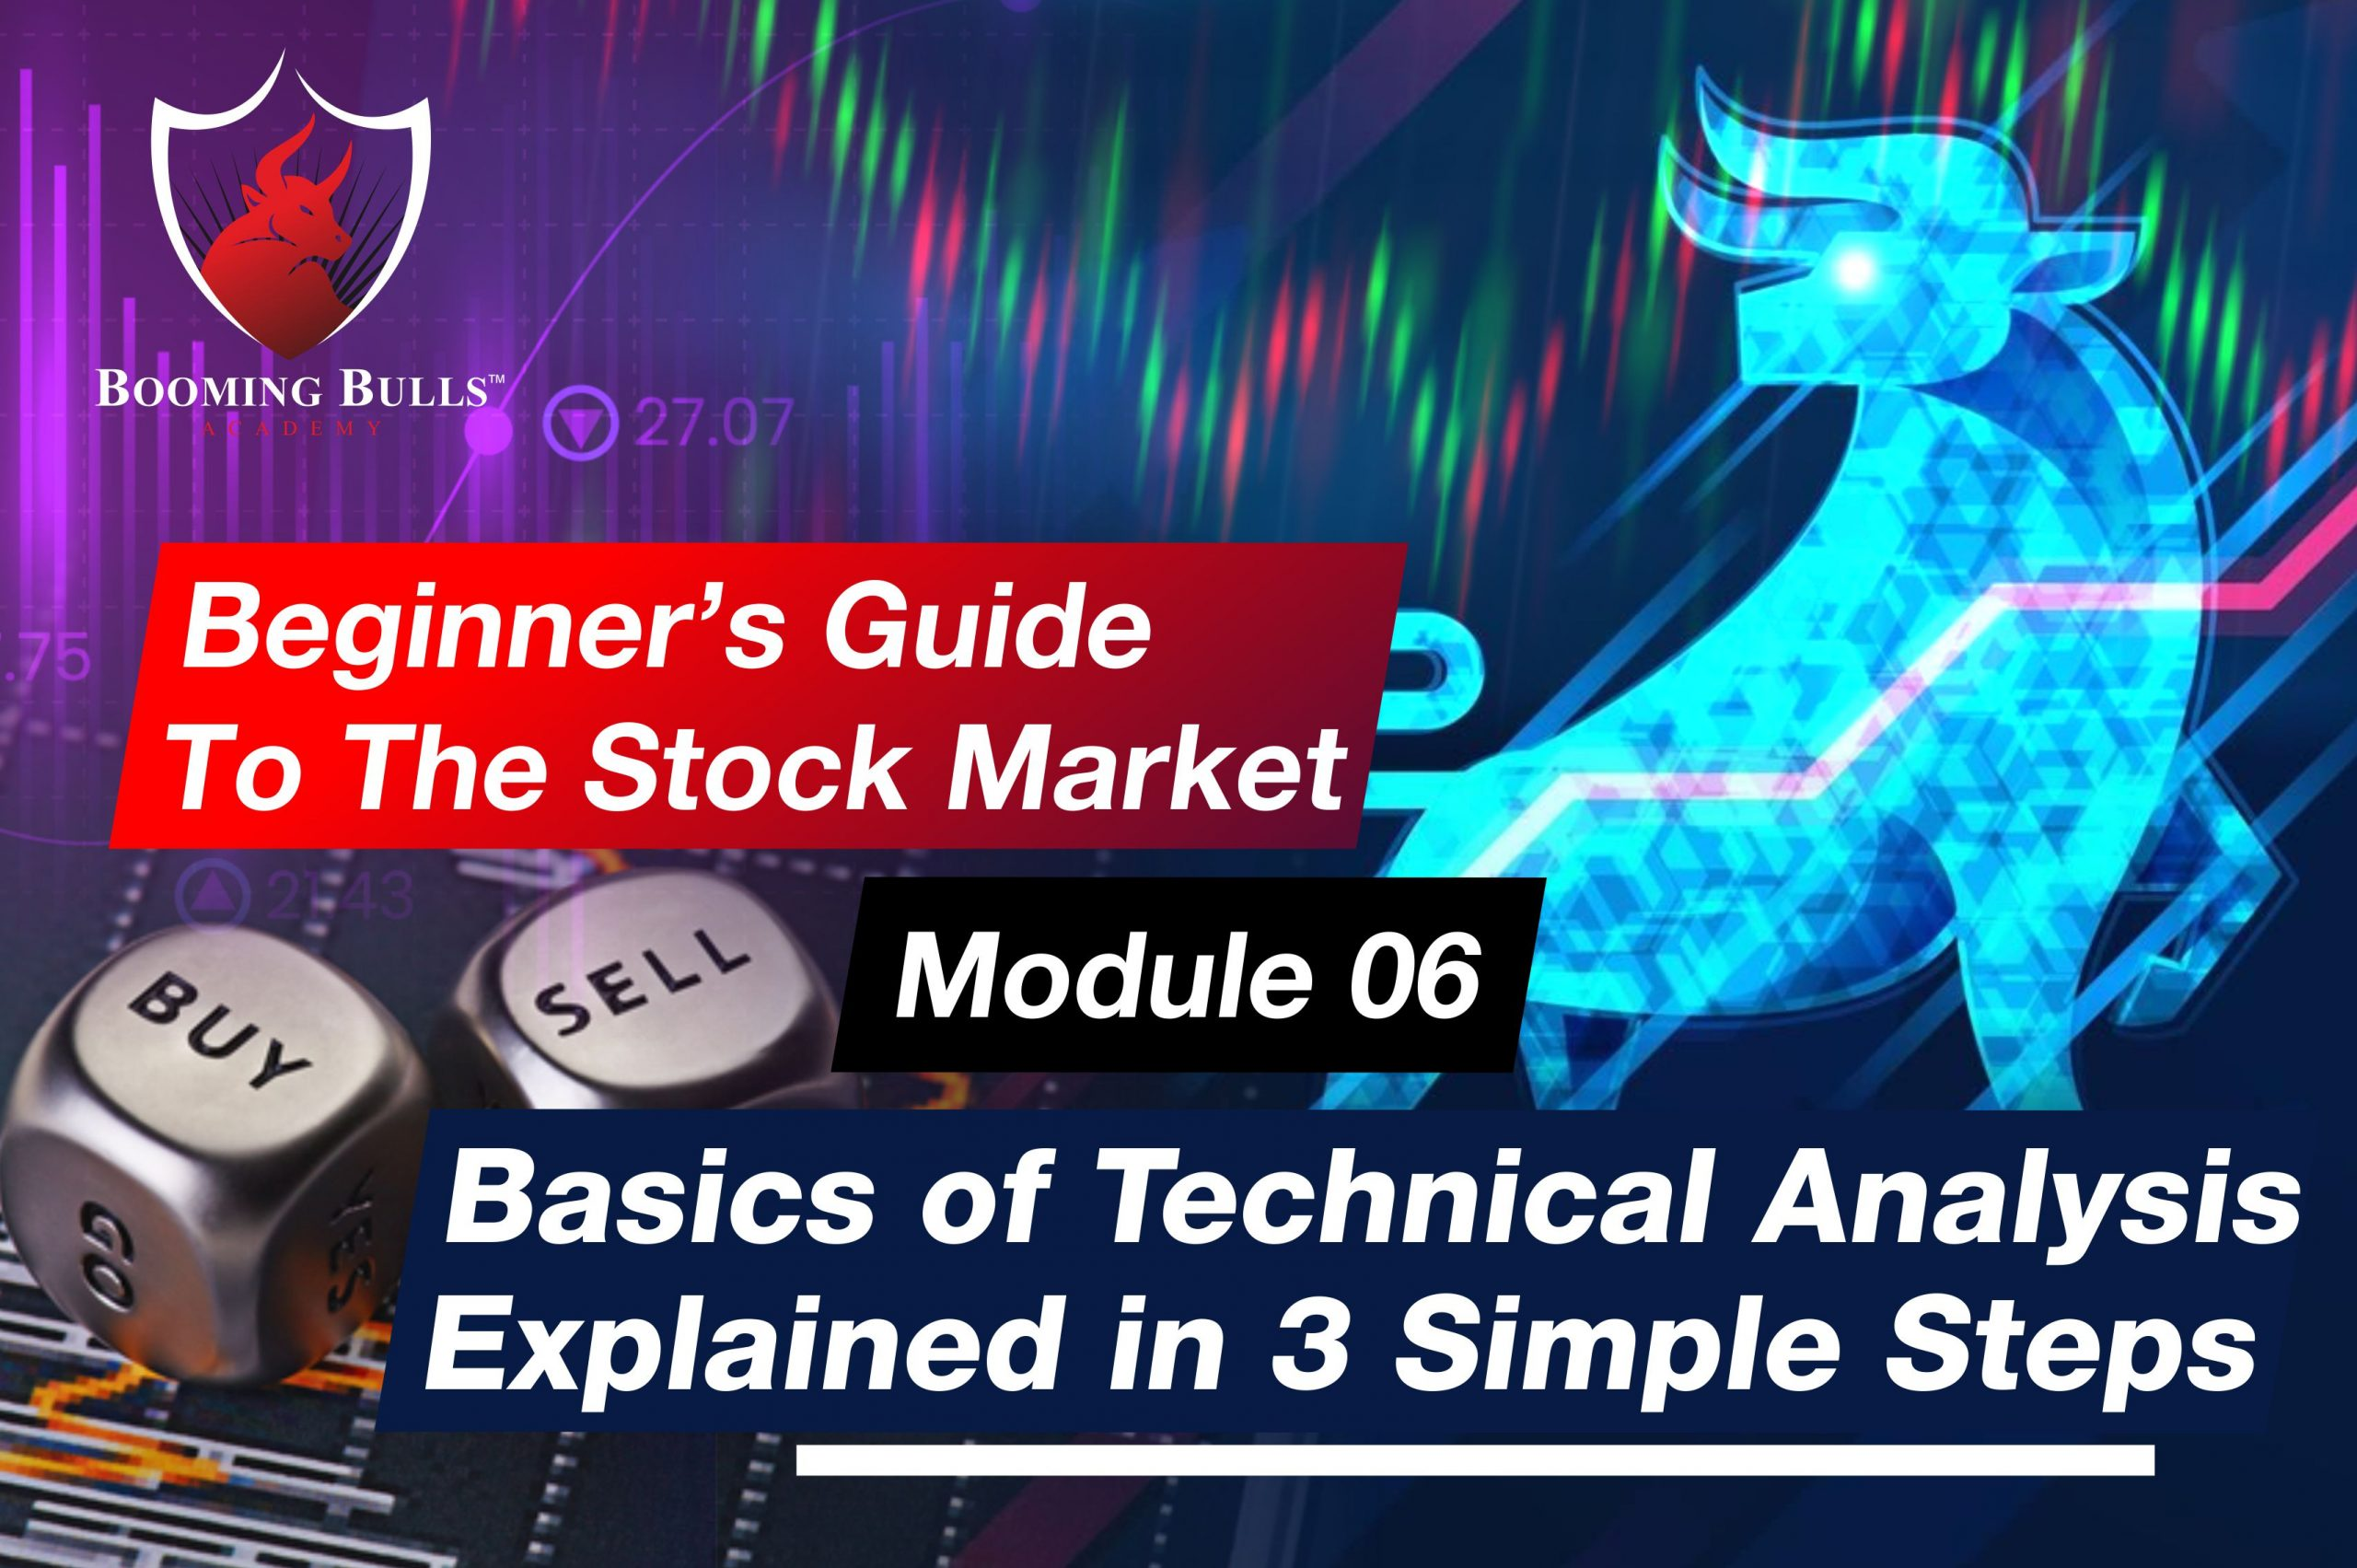 Beginner's Guide To The Stock Market | Module 06 | Basics of Technical Analysis Explained in 3 Simple Steps